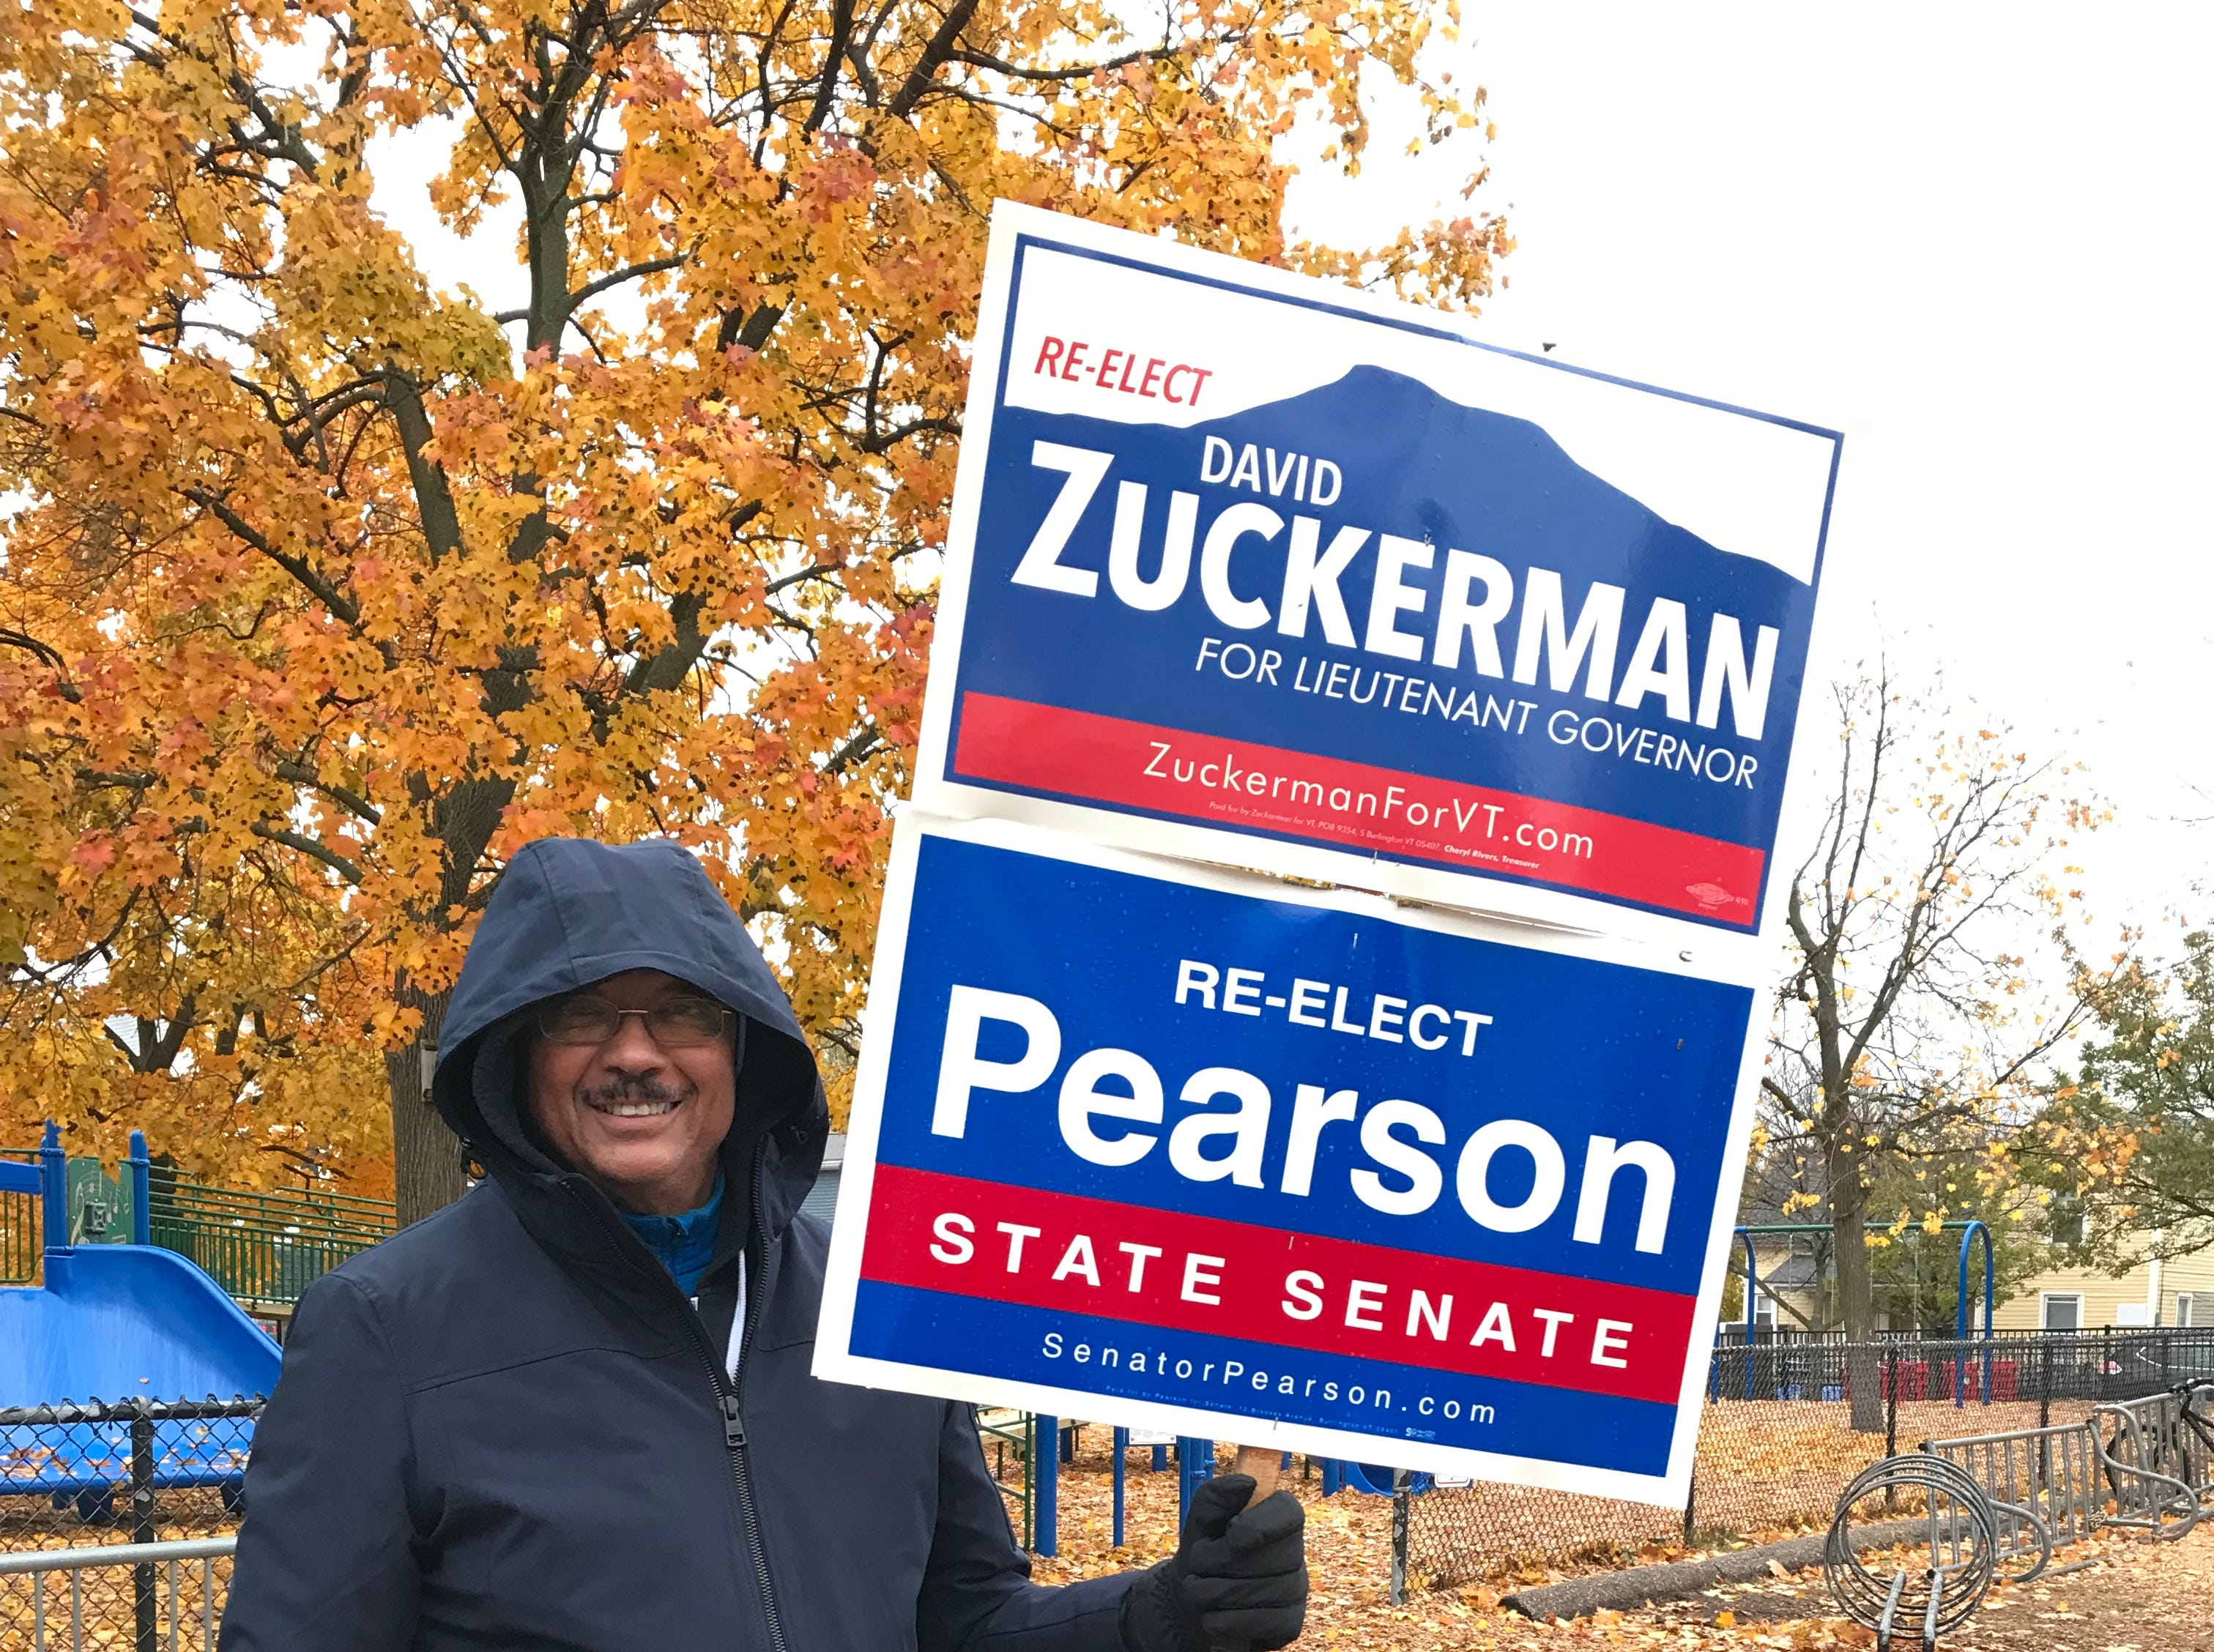 Bill Boyd supports his candidates at the Sustainability Academy at Lawrence Barnes in Burlington's Old North End neighborhood on Election Day, Nov. 6, 2018.